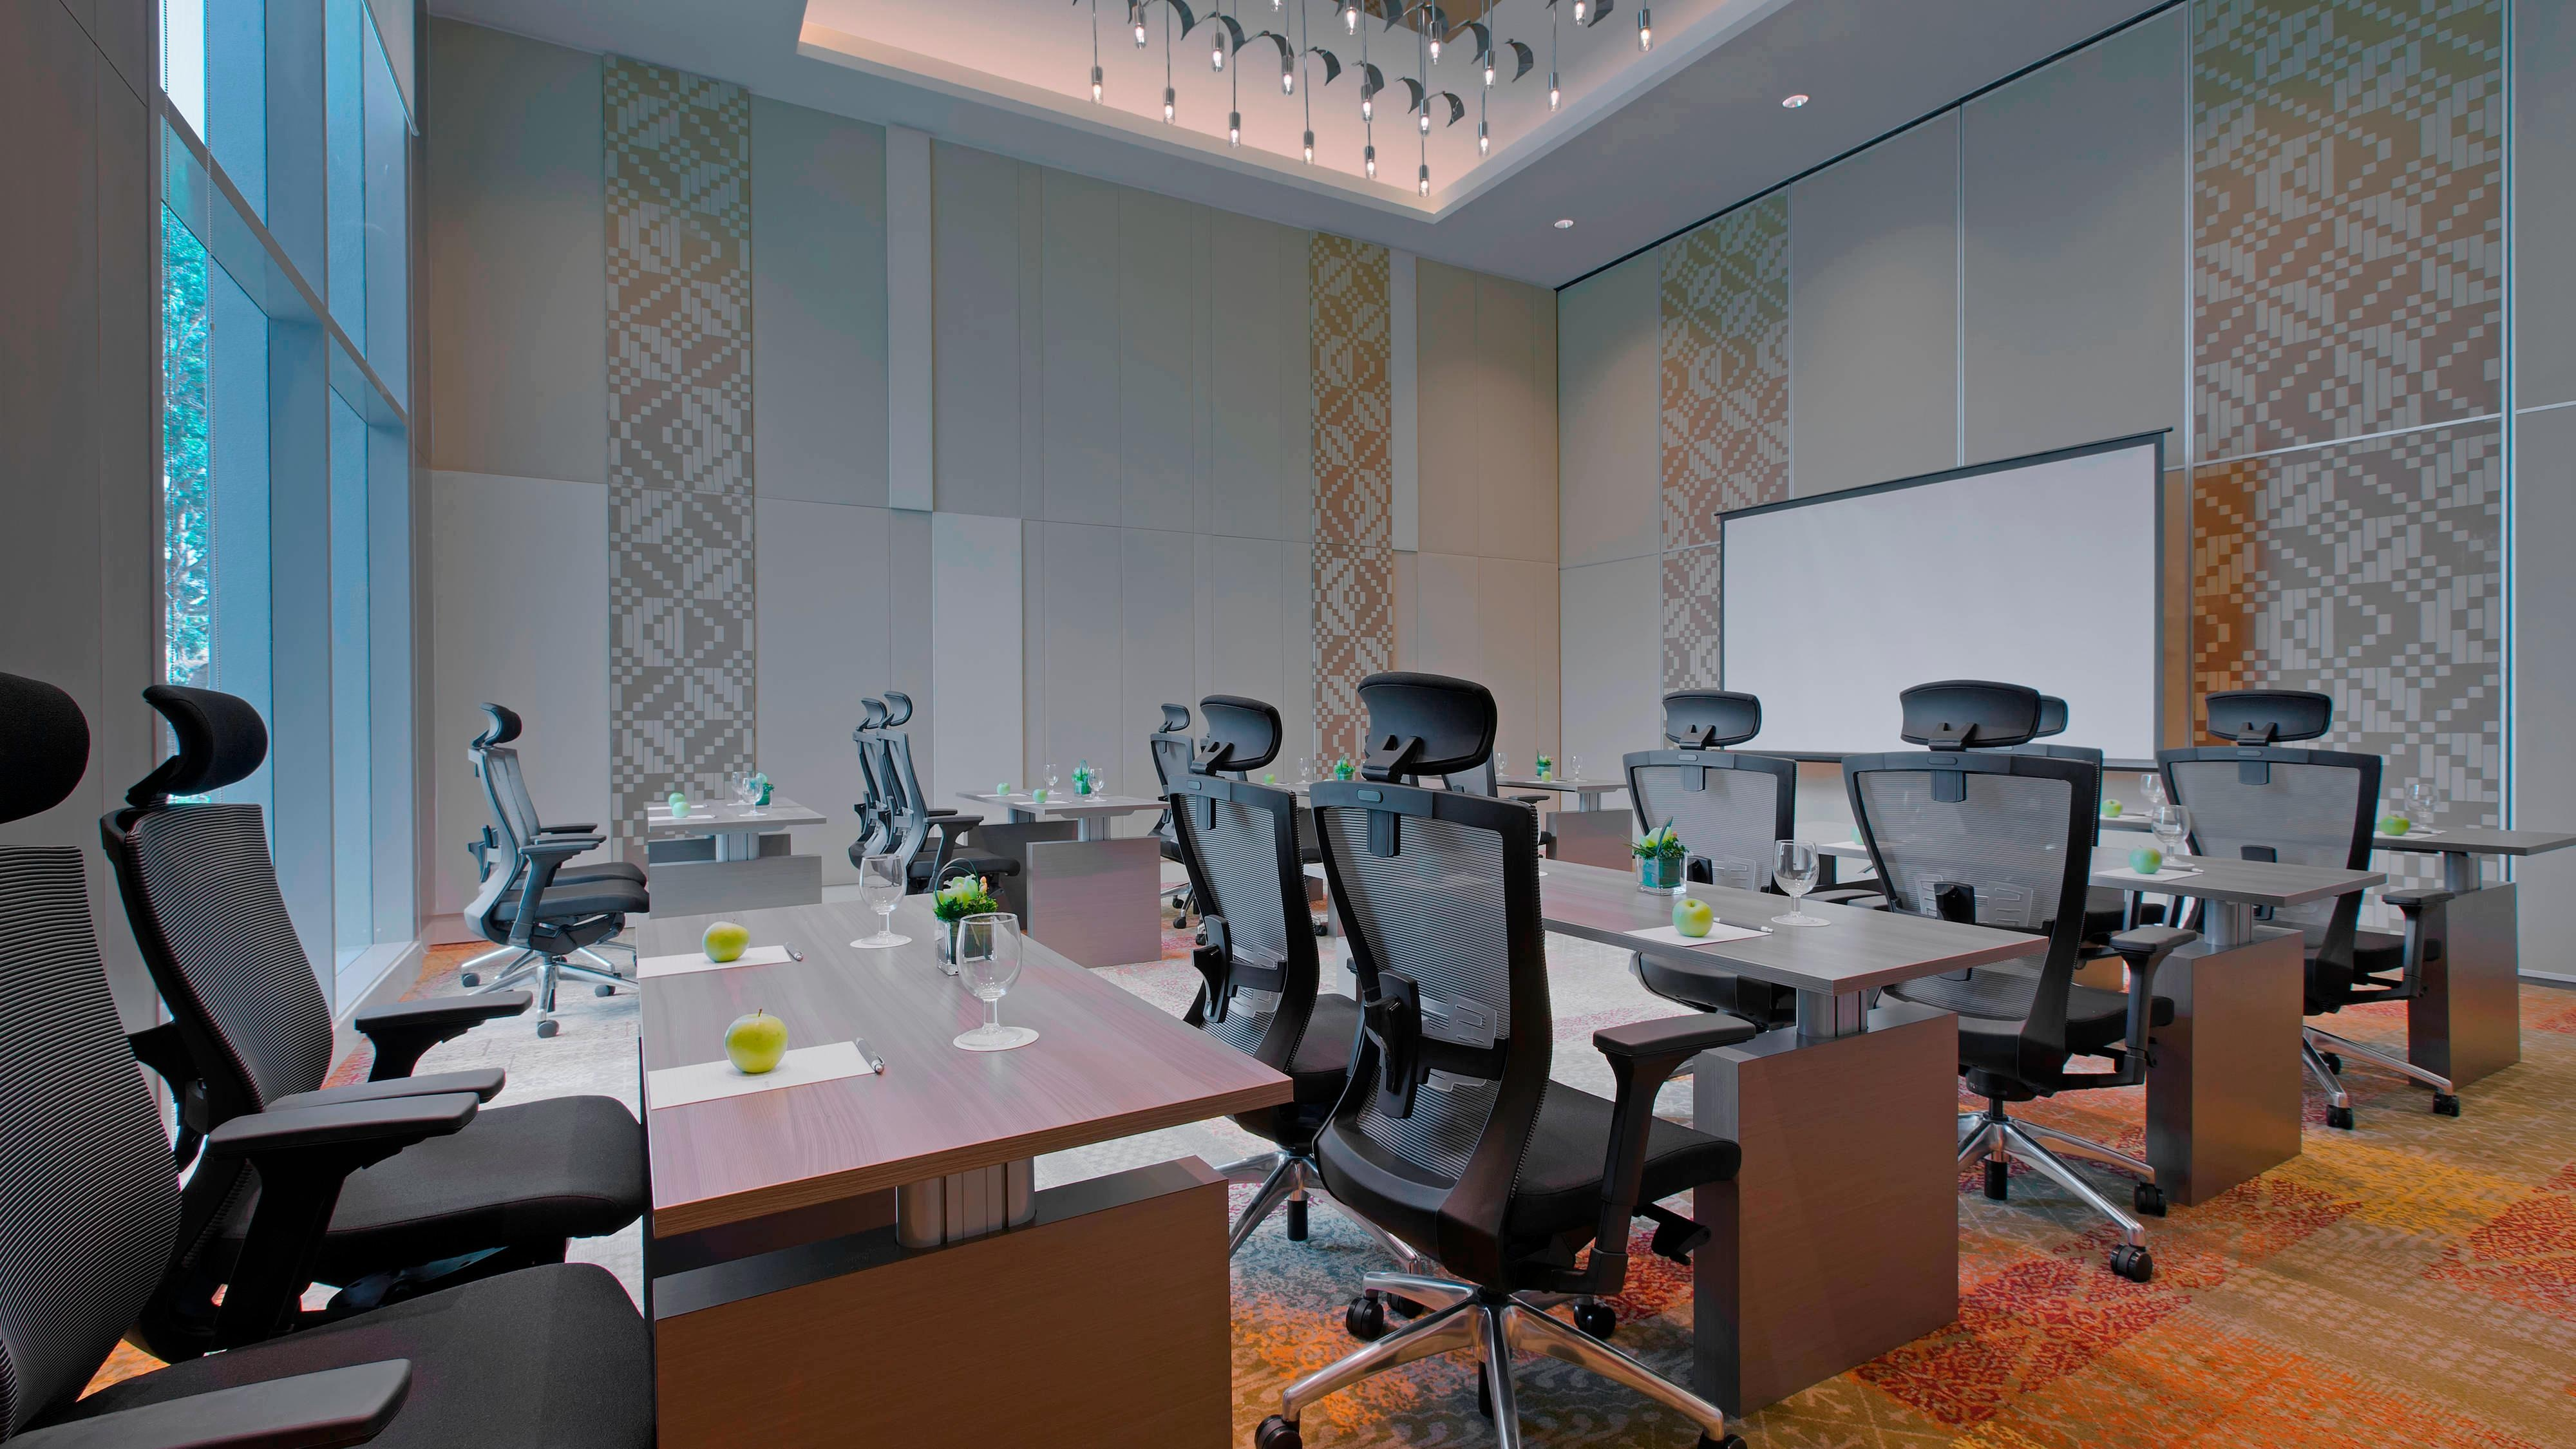 Breakout Room - Bumbon - Classroom Style